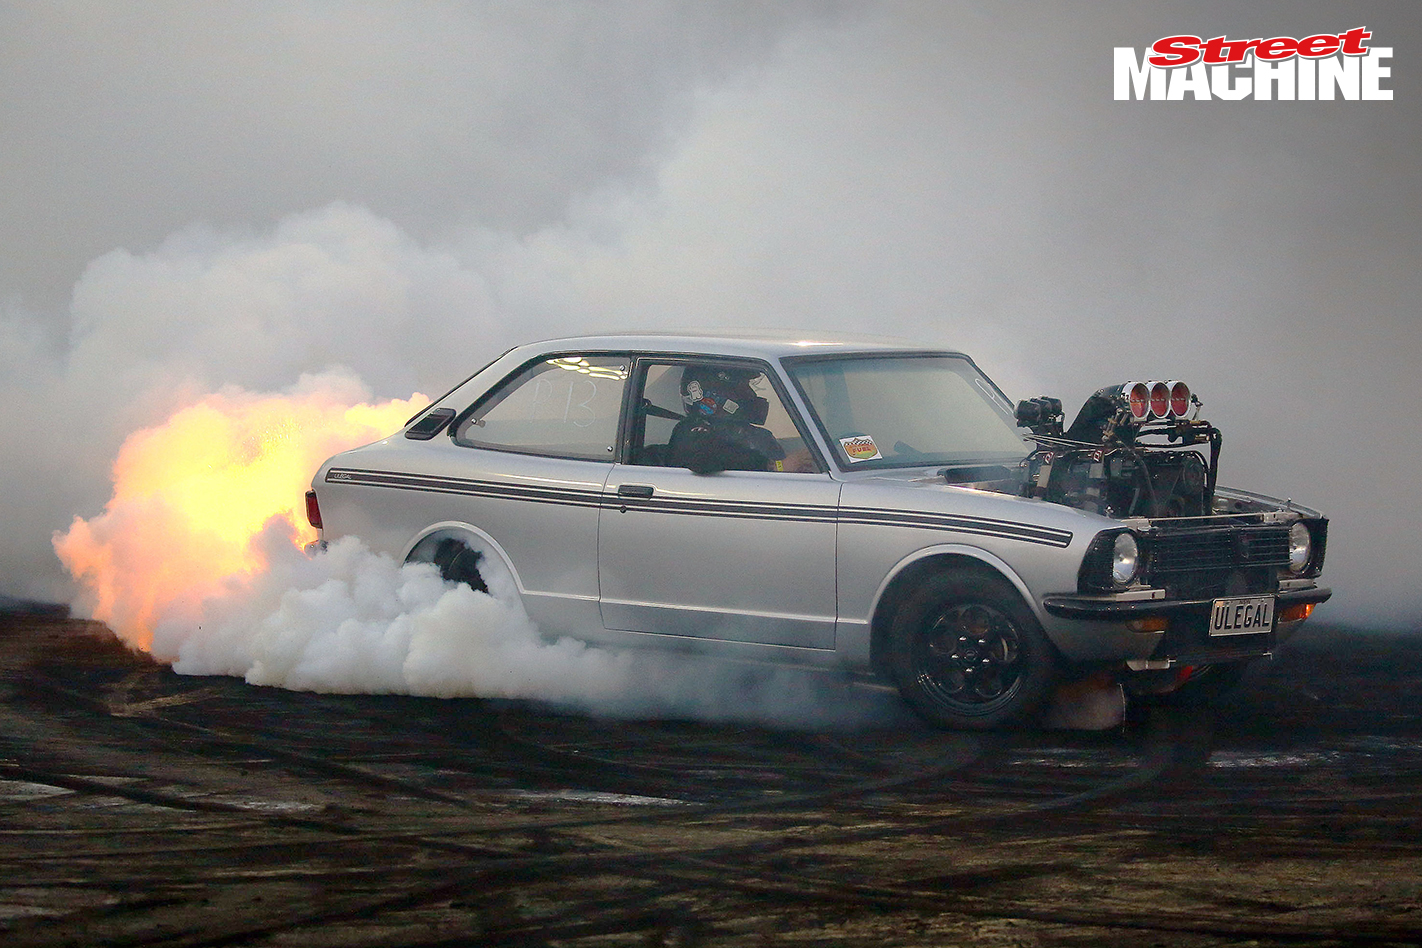 Toyota Corolla ULEGAL Burnout